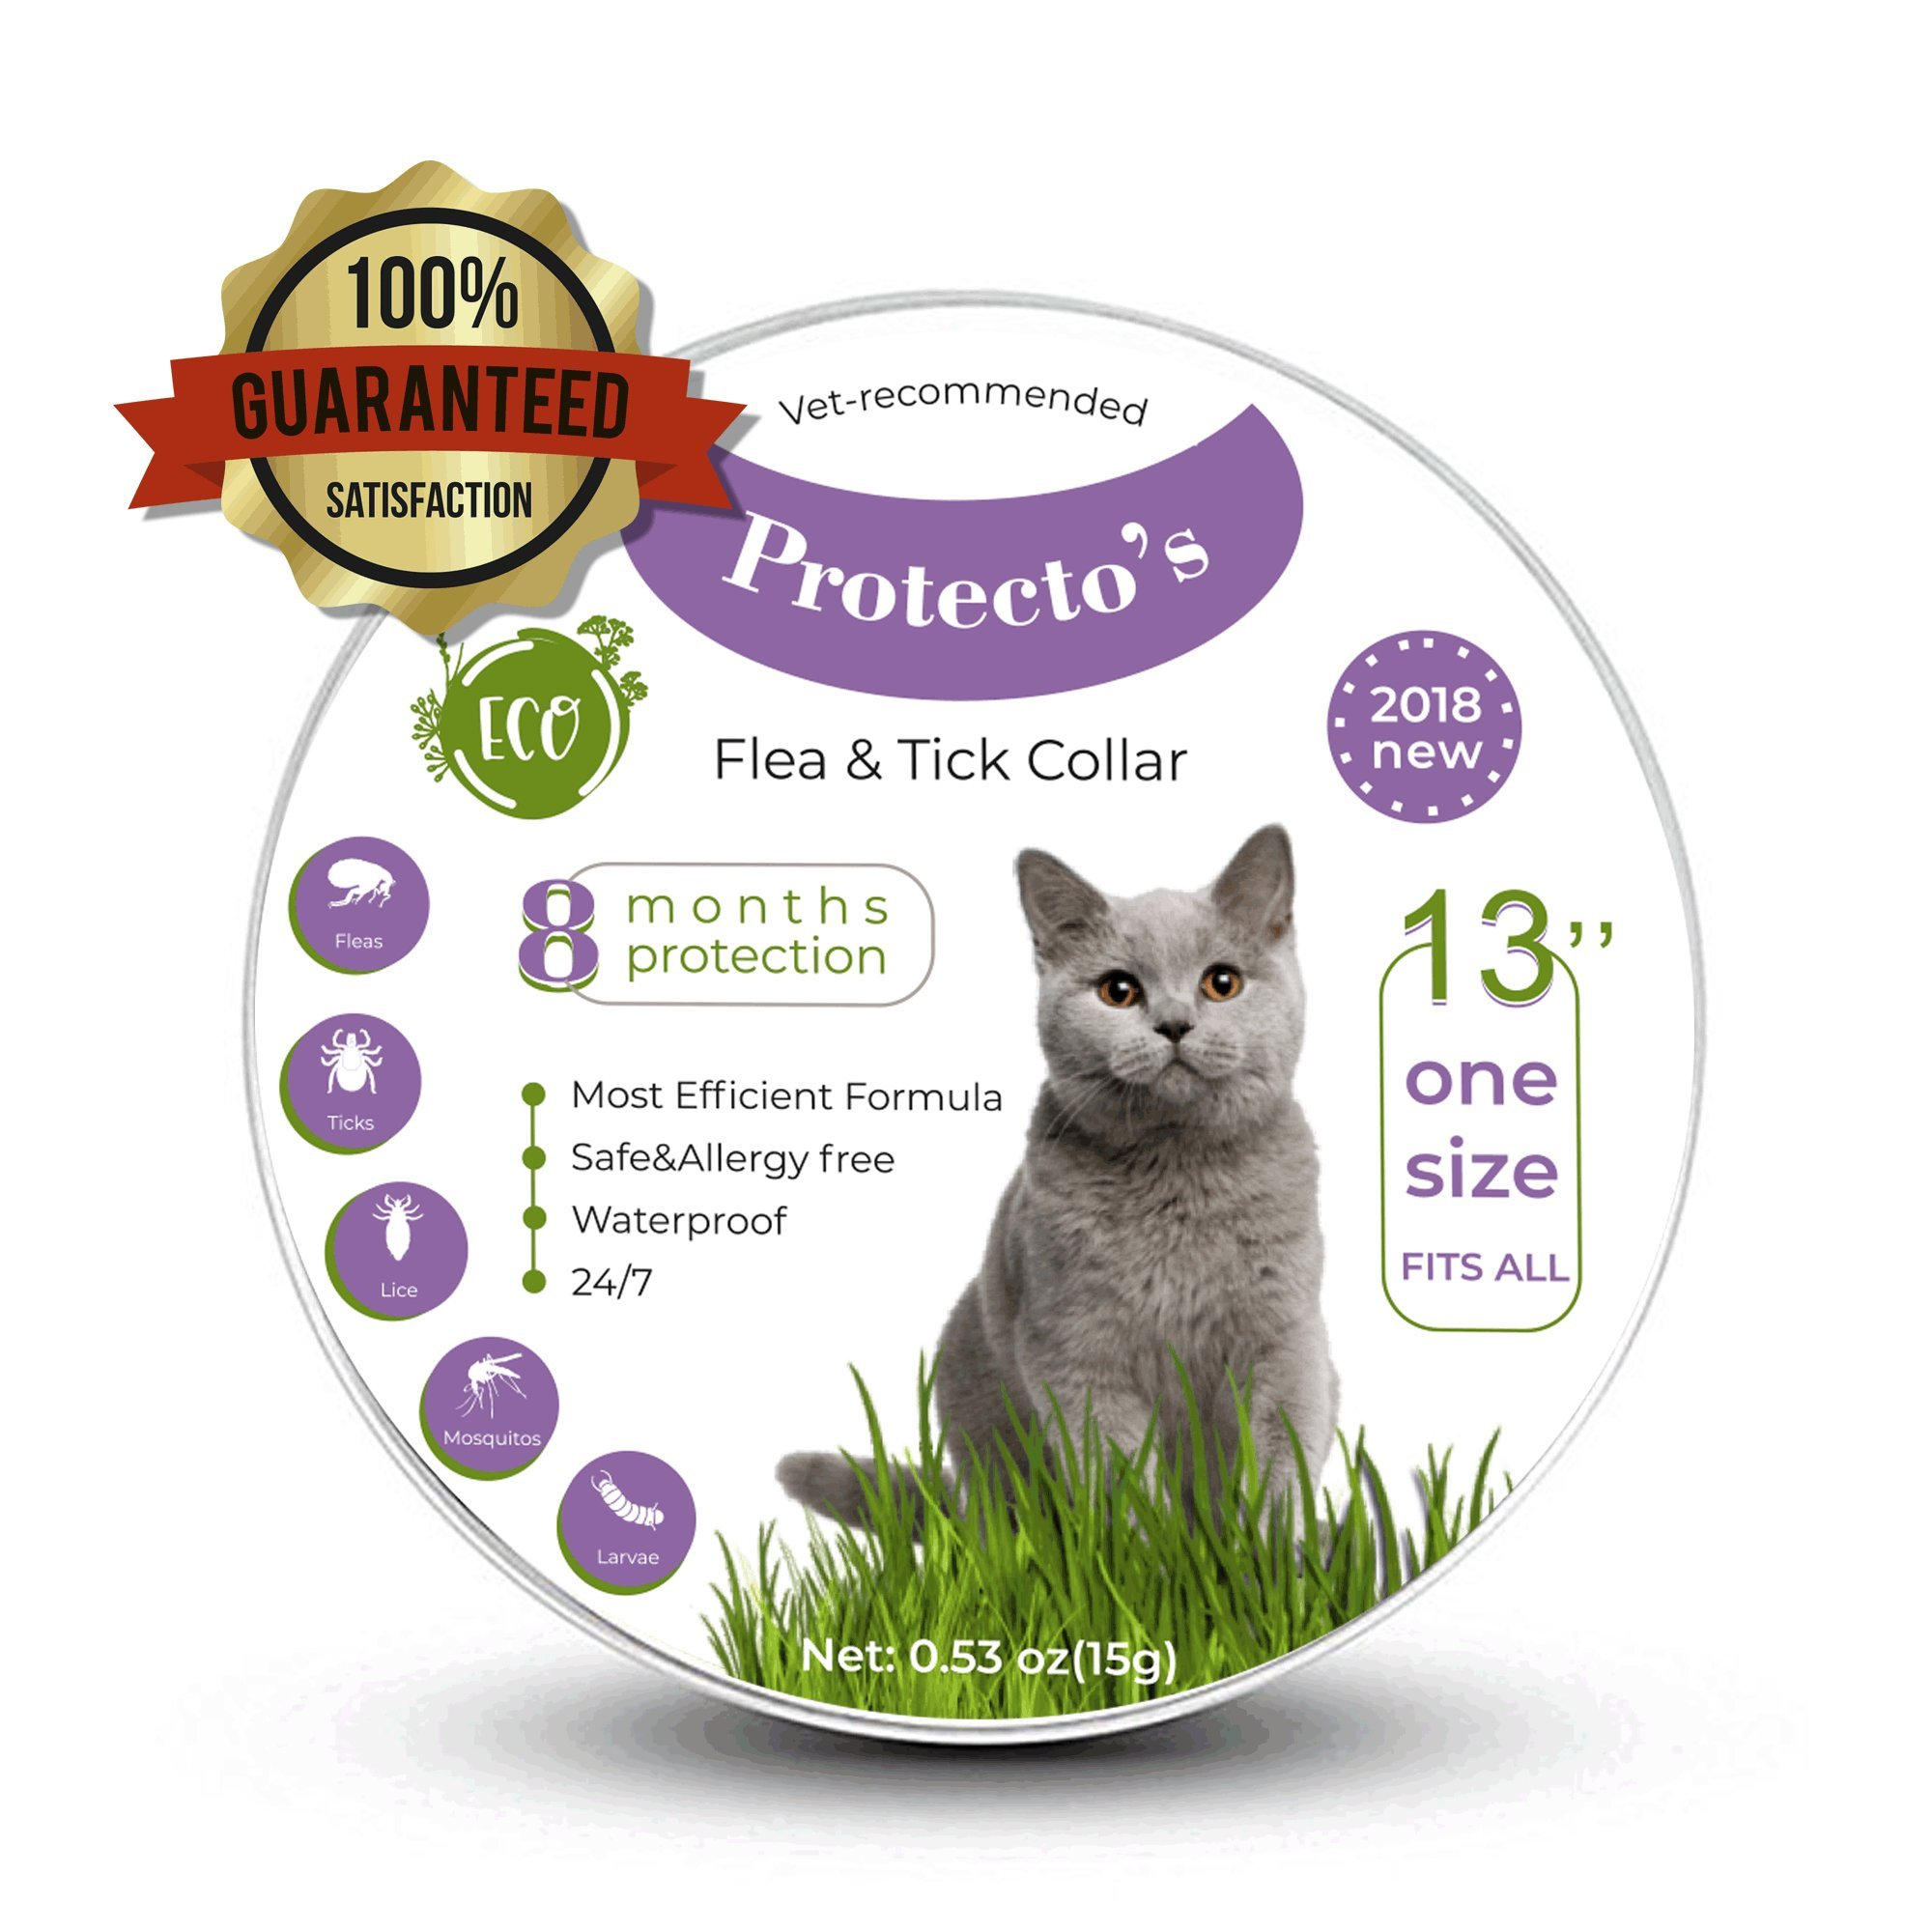 Protecto's cat flea collar tick collar for cats 100% safe hypoallergenic kills flea repels flea natural essential oils 8 months protection waterproof fits all the sizes premium quality pet flea collar